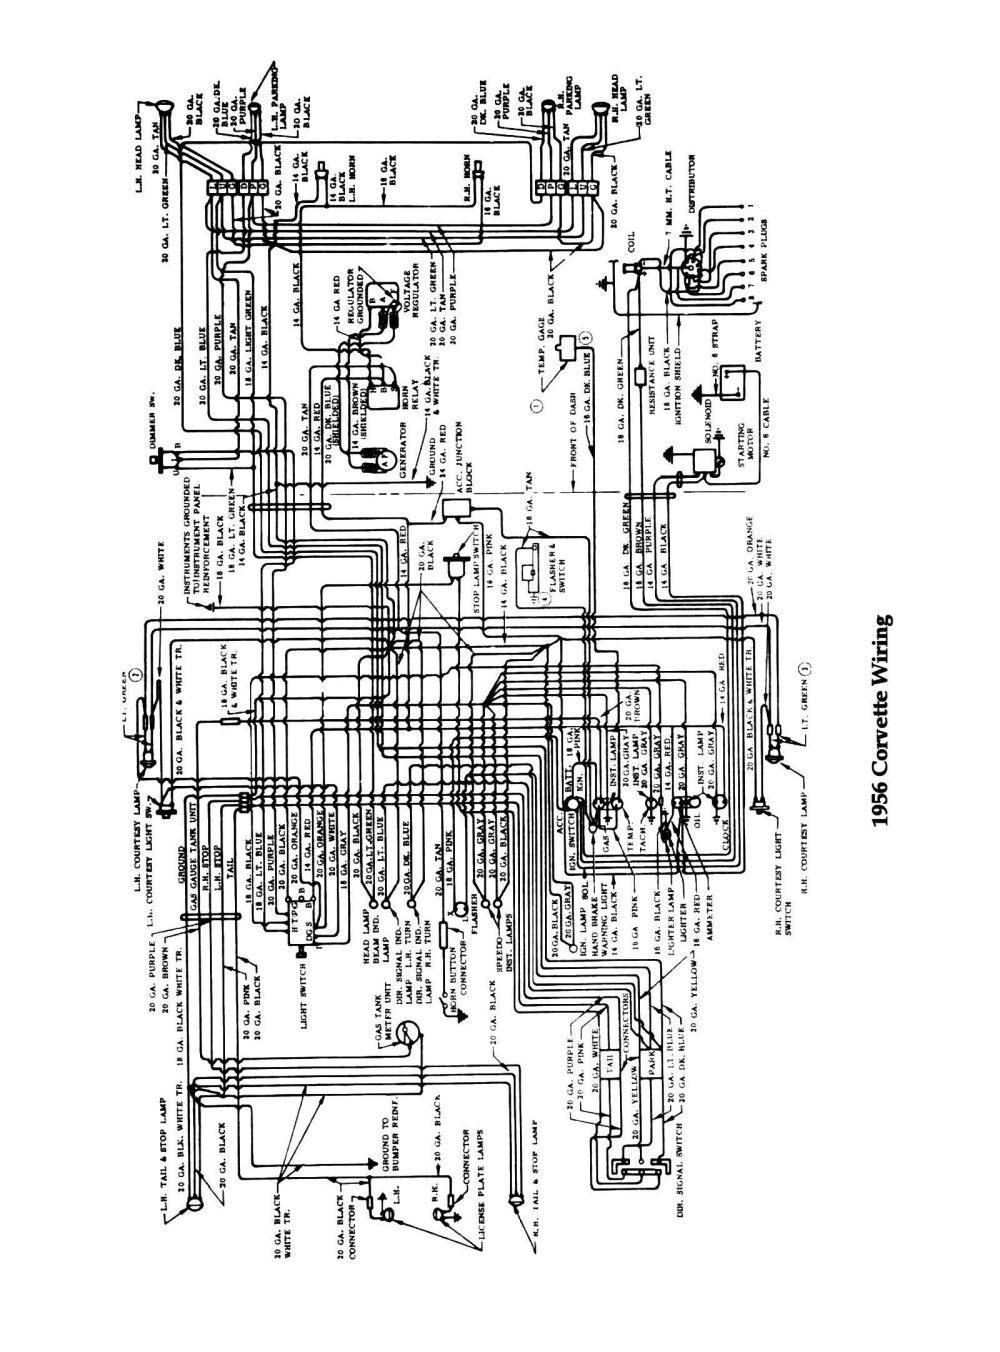 medium resolution of chevy wiring diagrams 66 corvette wiring diagram 1957 corvette wiring 1957 corvette wiring